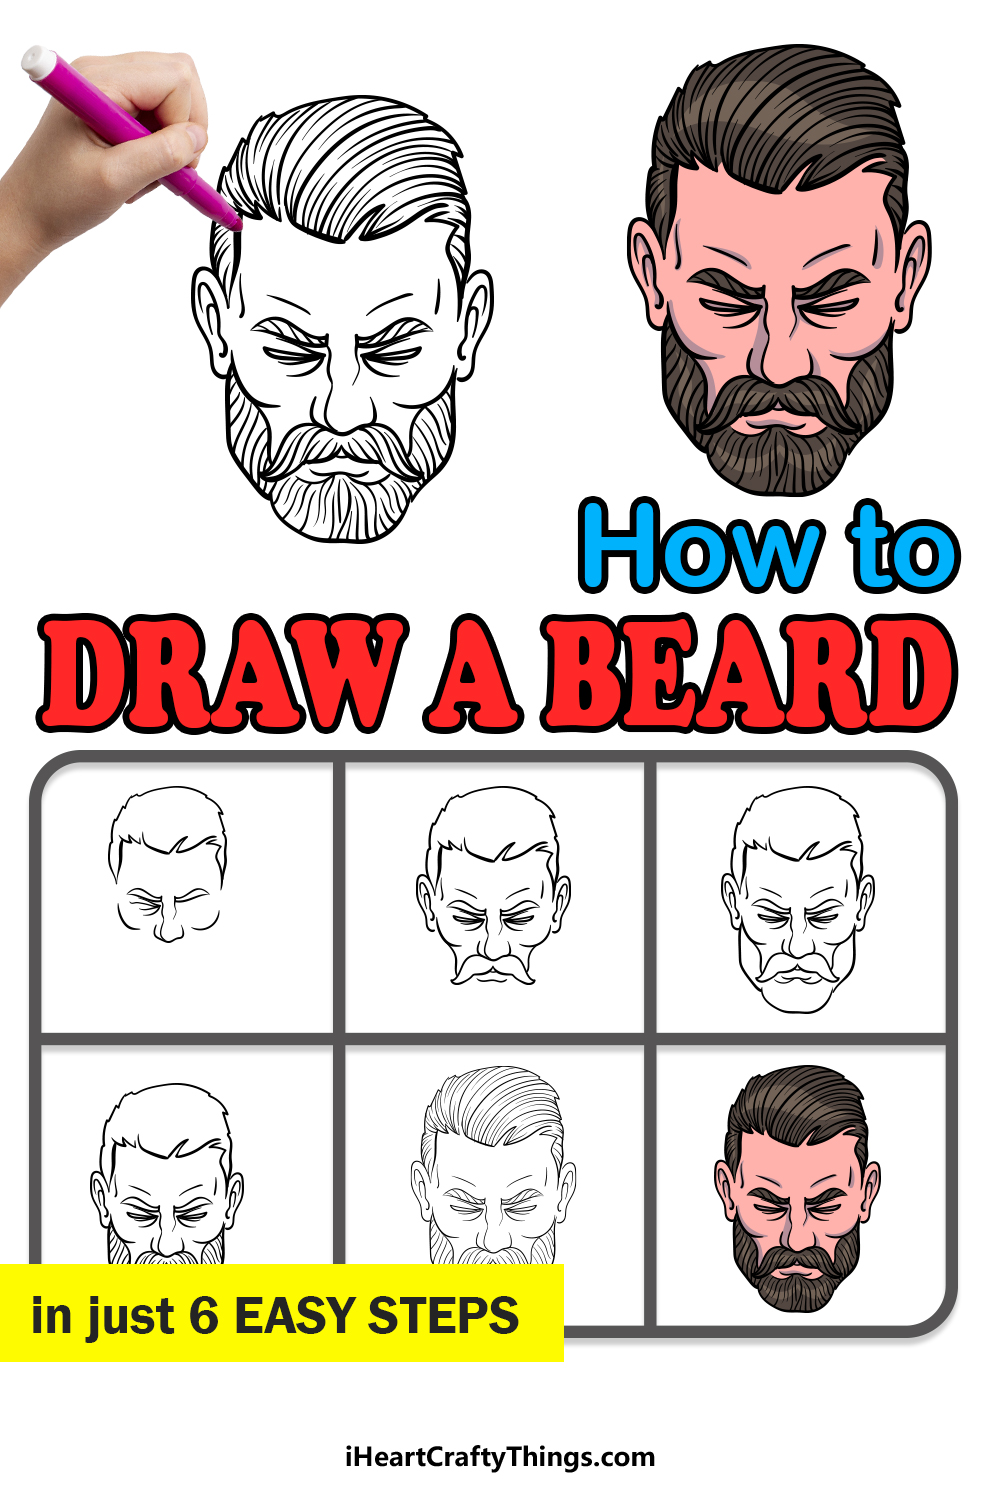 how to draw a beard in 6 easy steps